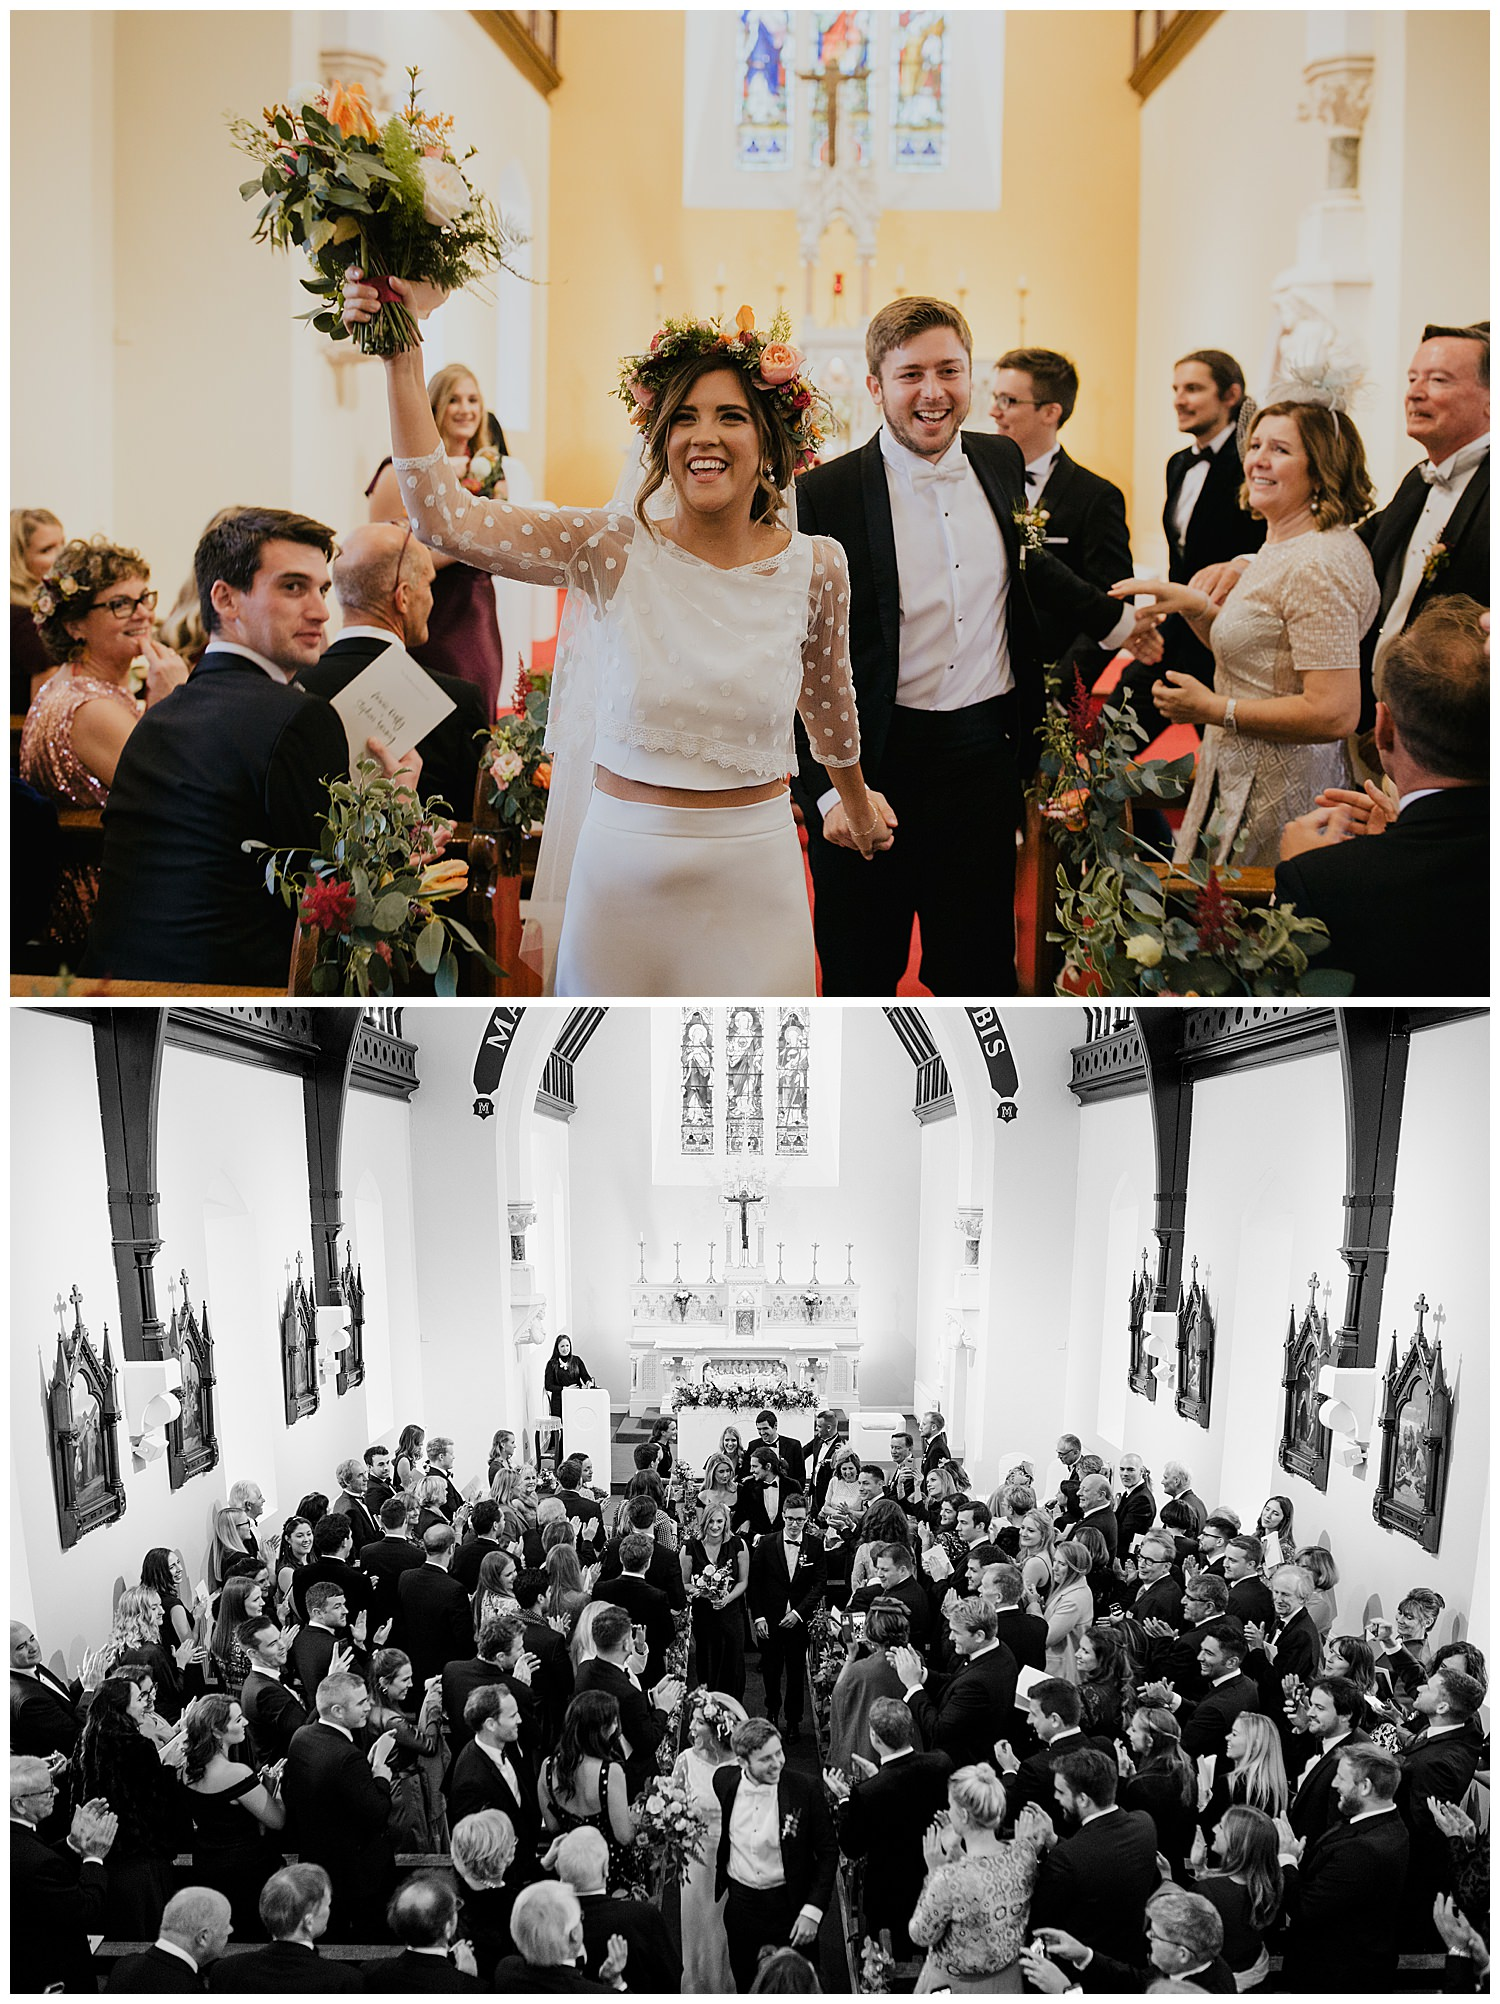 a+s_ballymagarvey_village_wedding_photographer_livia_figueiredo_27.jpg